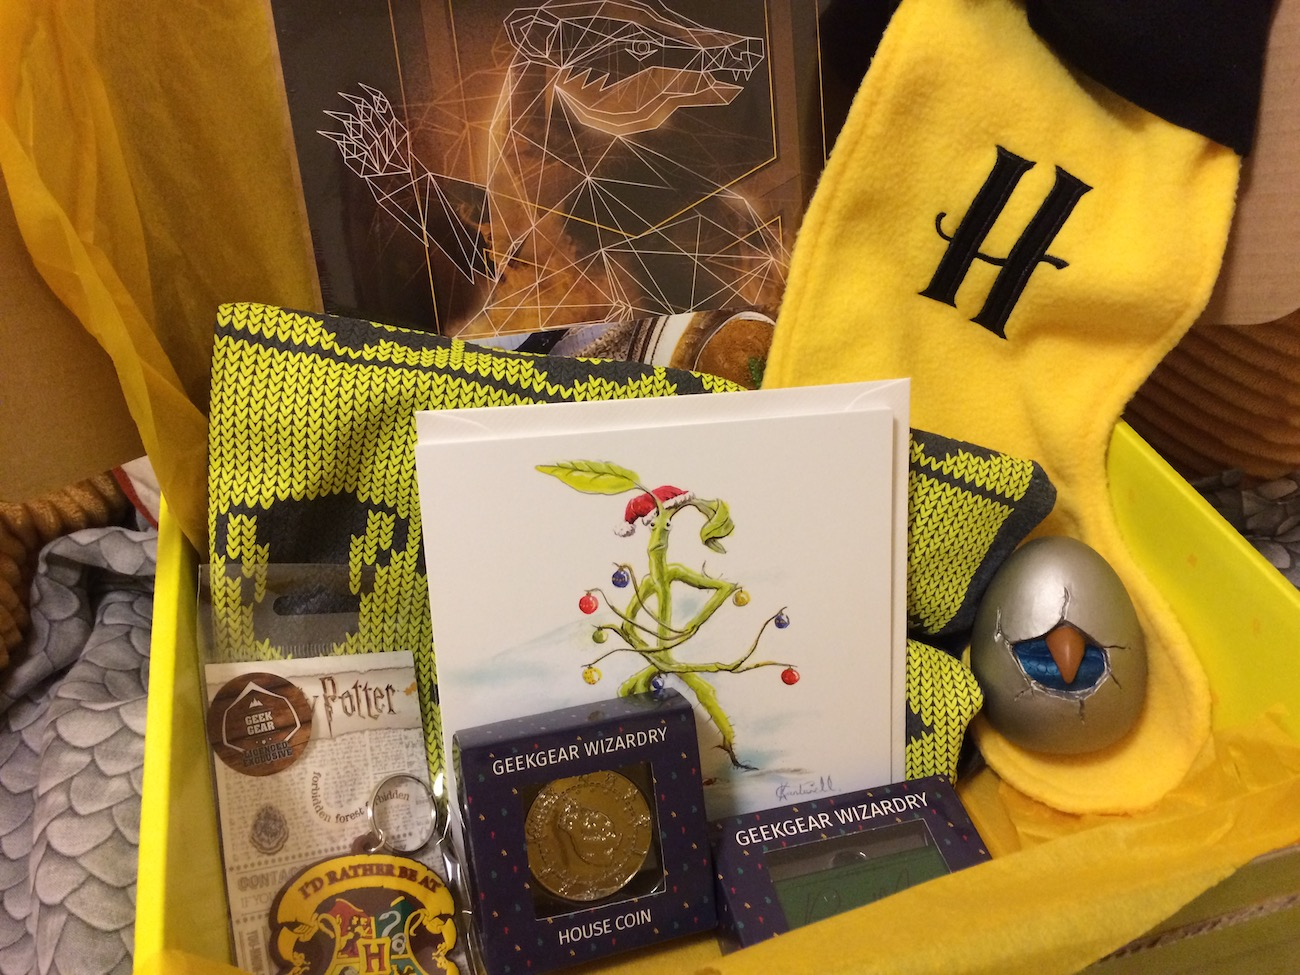 Geek Gear's November World of Wizardry box was themed around the holiday season.